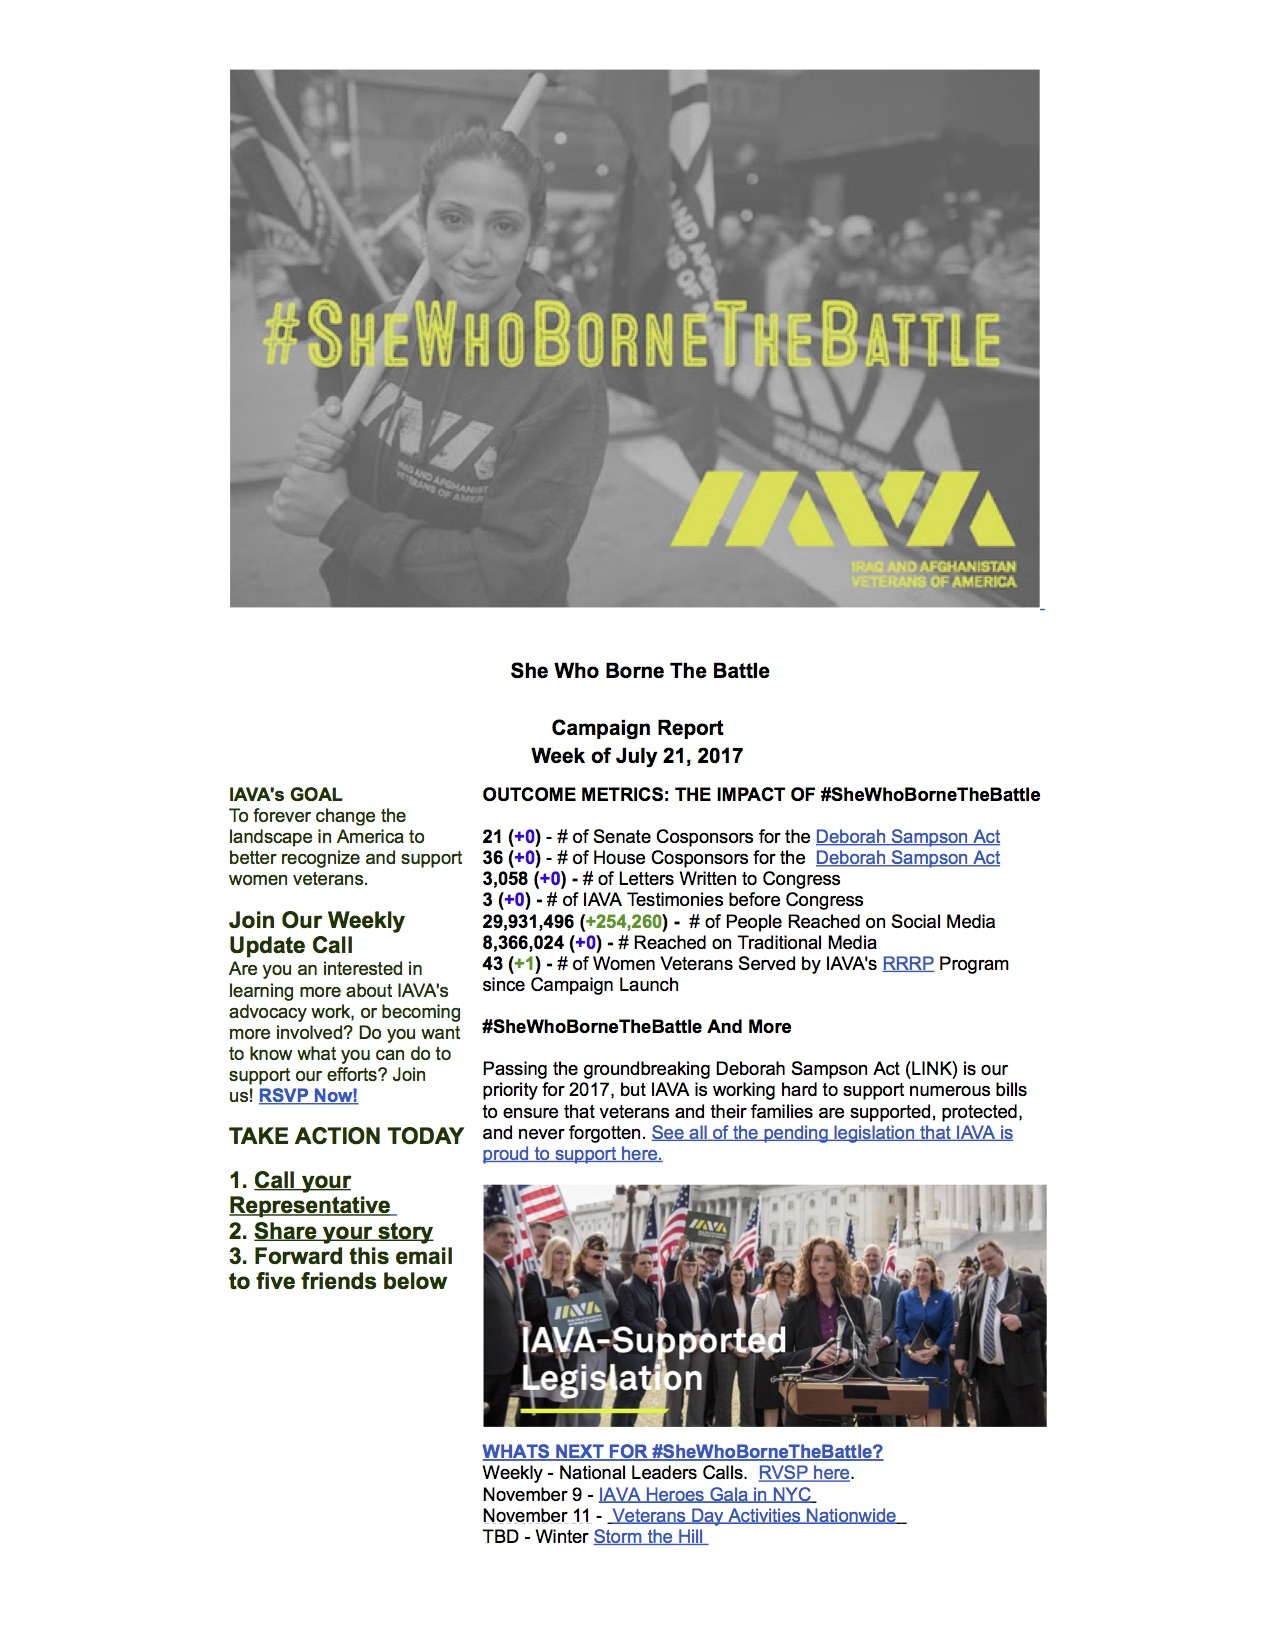 #SheWhoBorneTheBattle Report July 21, 2017 - claireo@iava